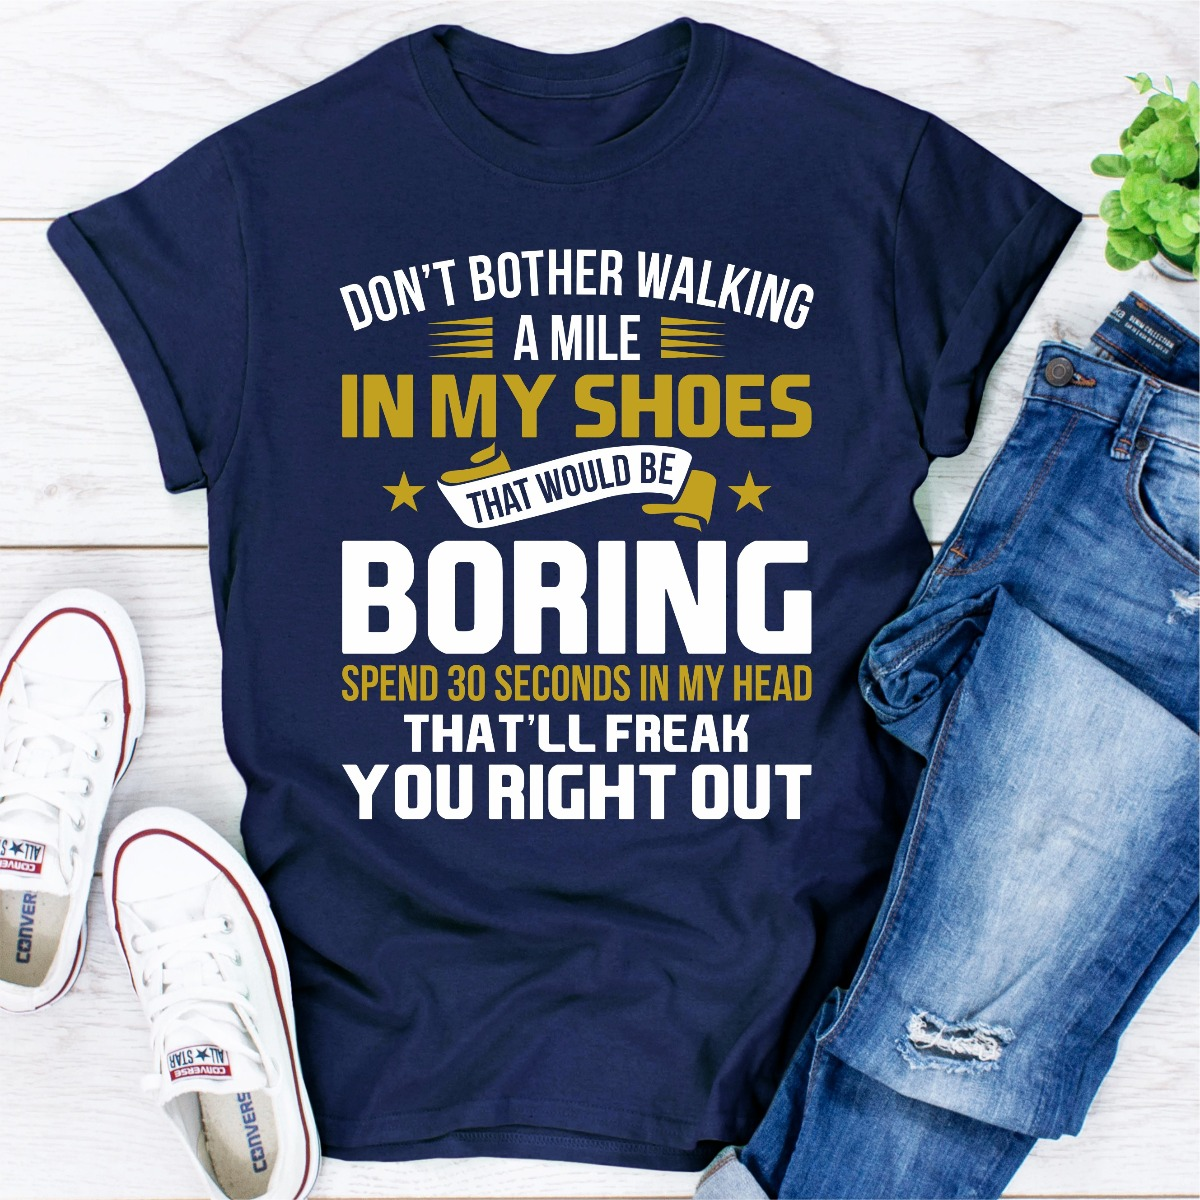 Don't Bother Walking A Mile In My Shoes (Navy / L)